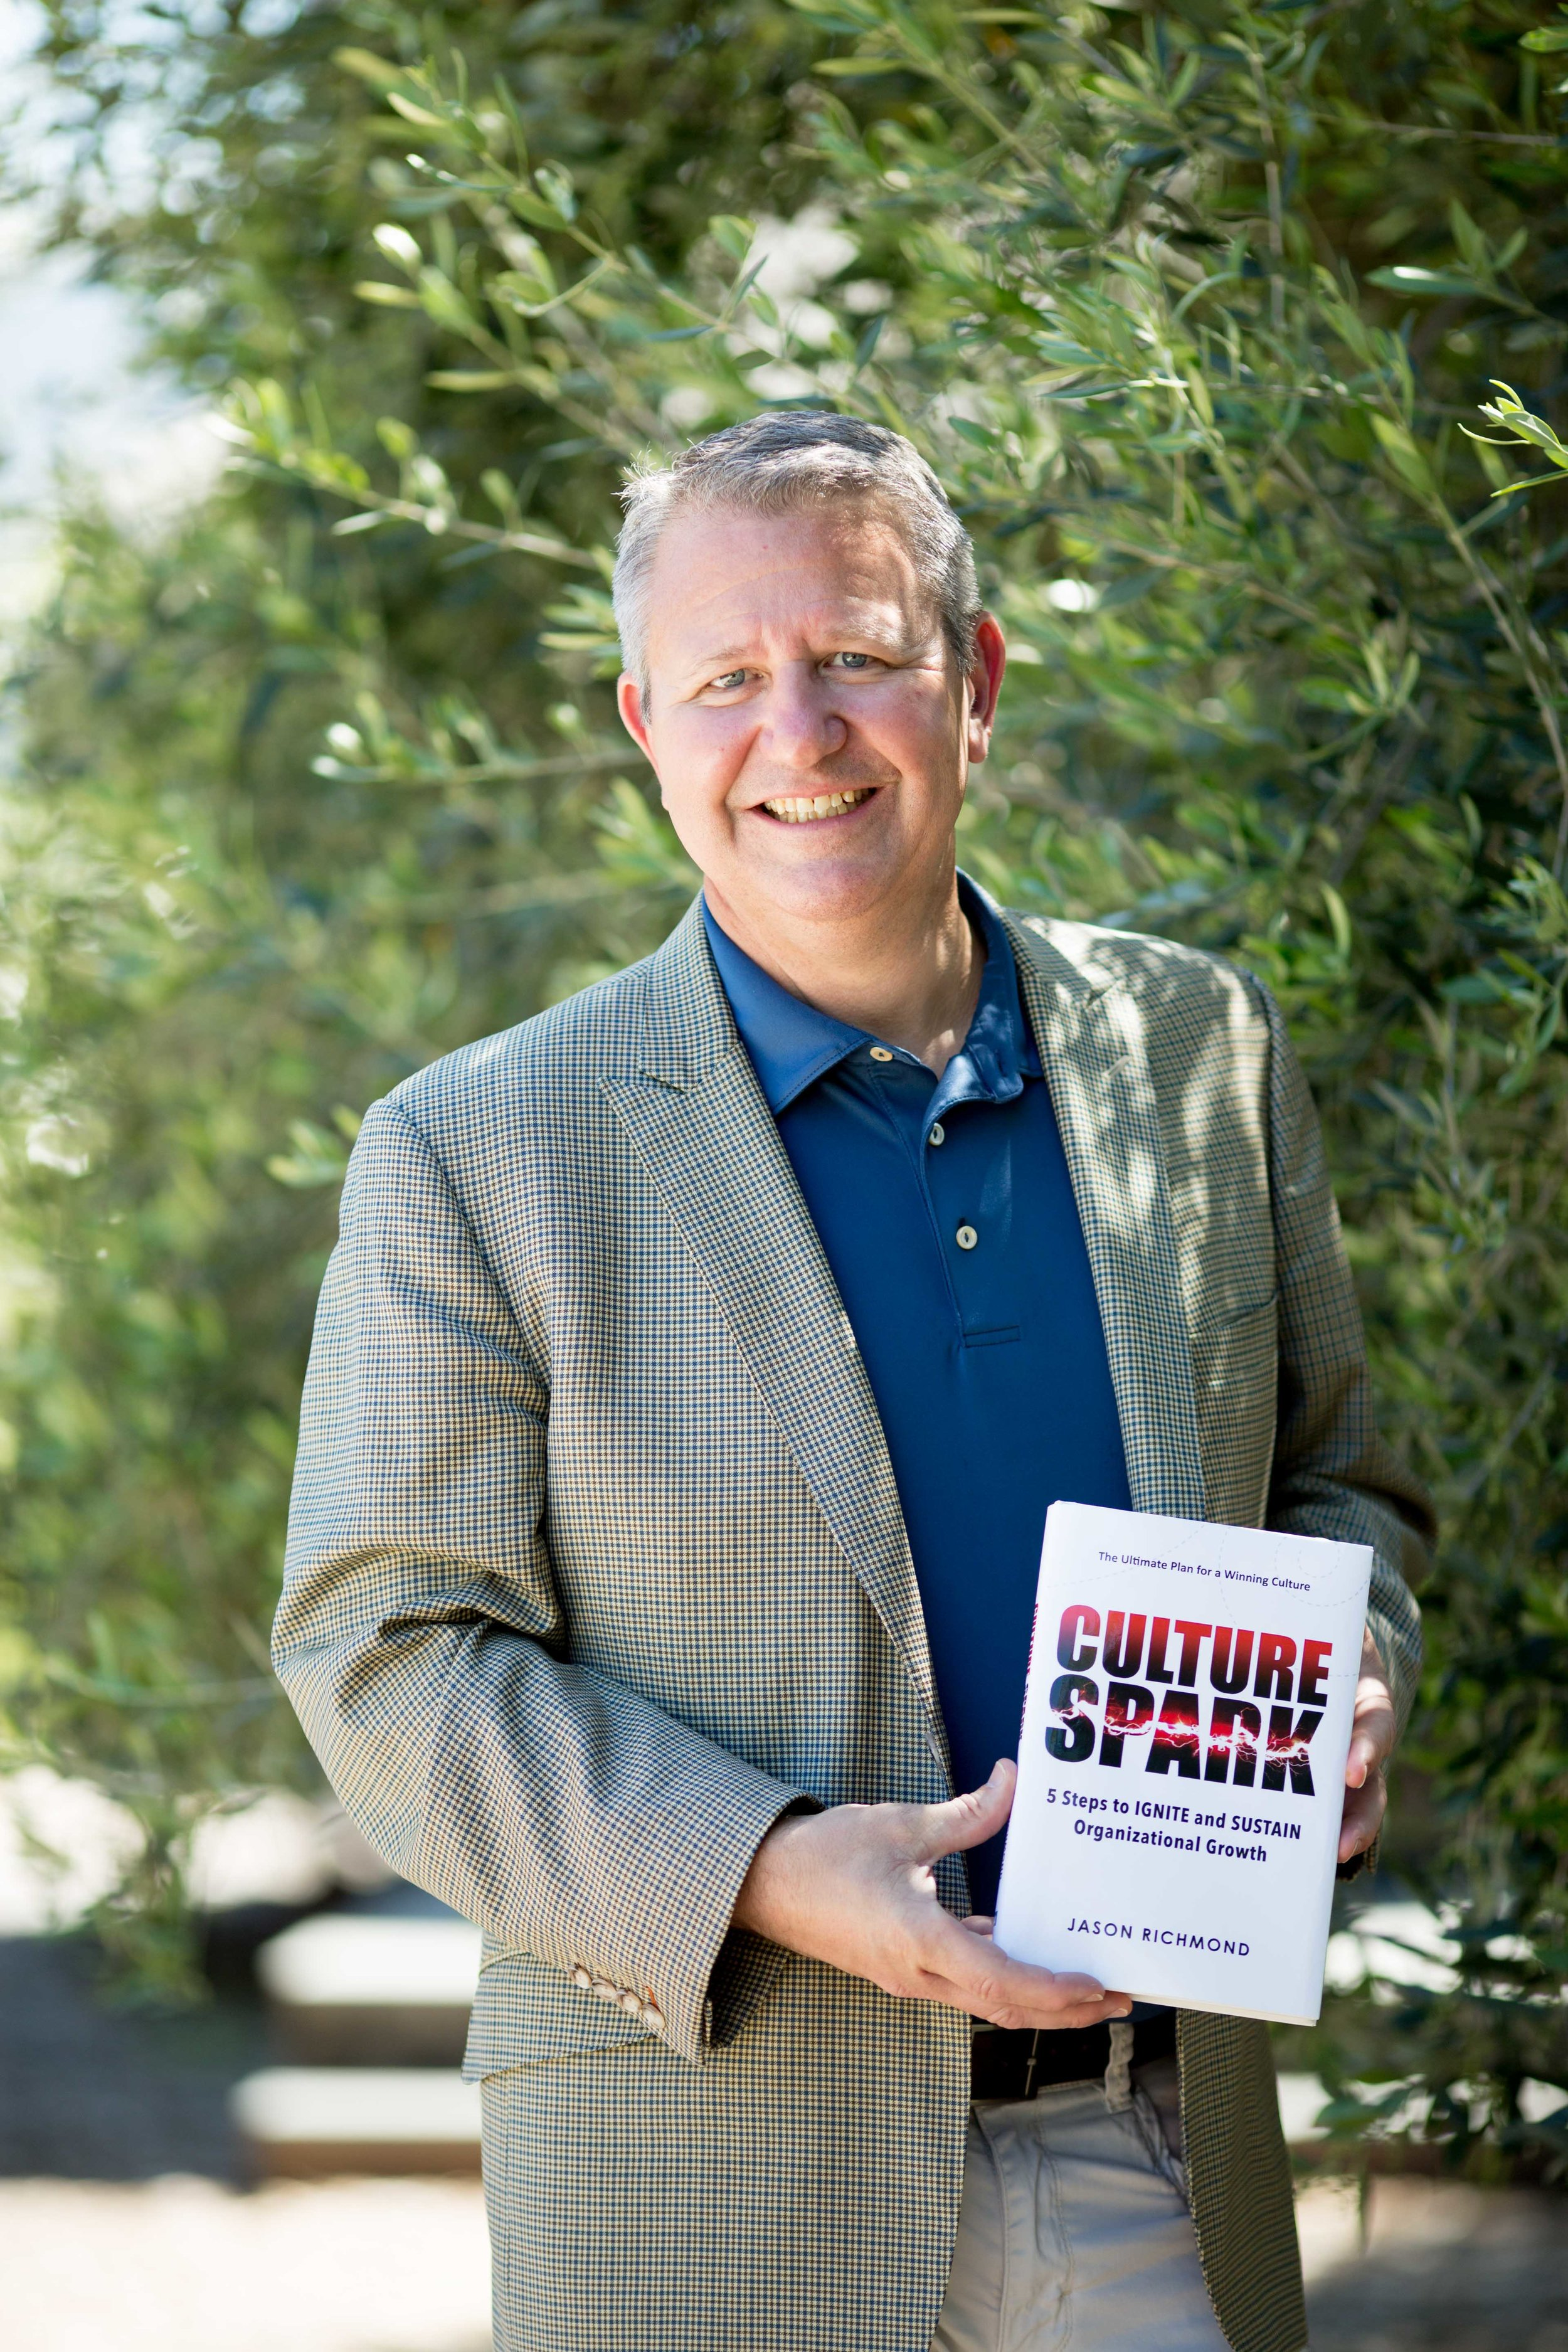 Jason Richmond, Author of Culture Spark: 5 Steps to Ignite and Sustain Organizational Growth